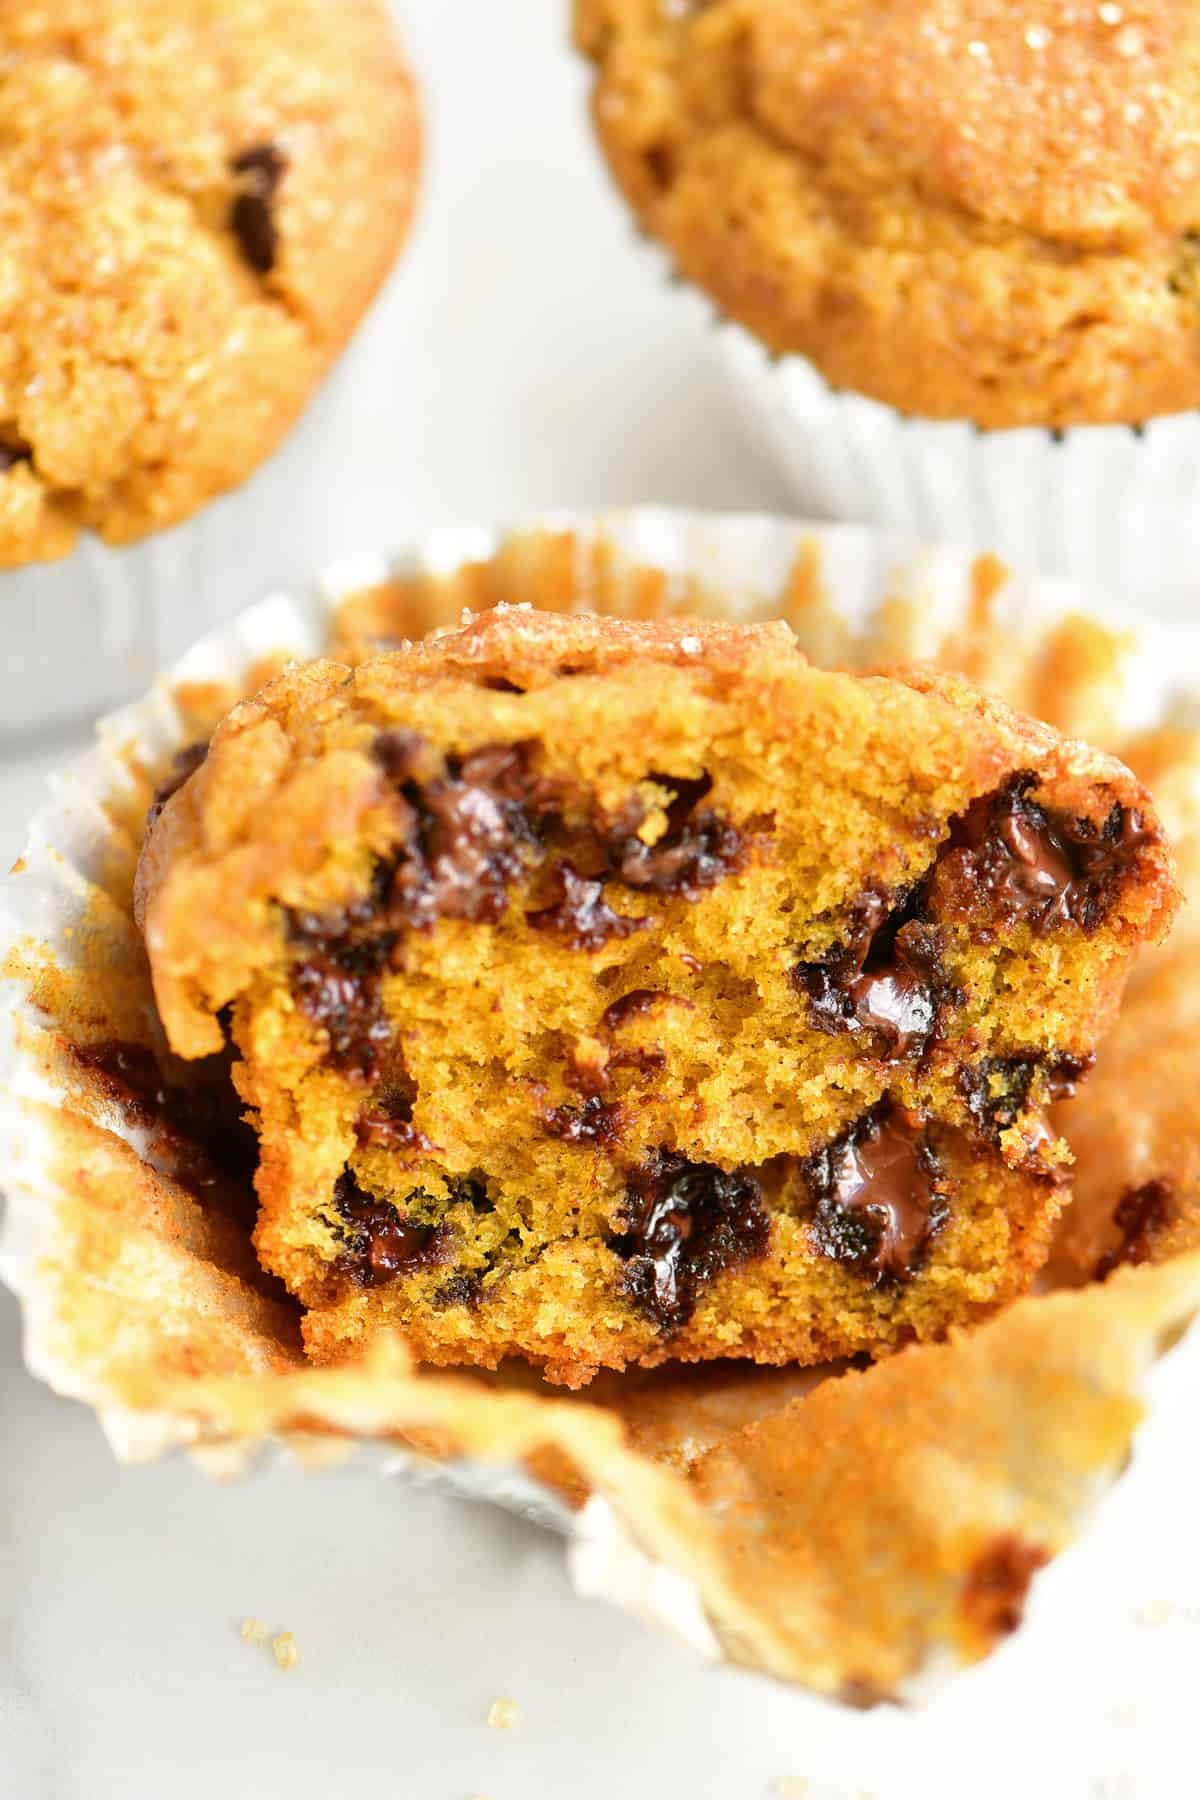 a warm delicious pumpkin muffin with gooey chocolate chips